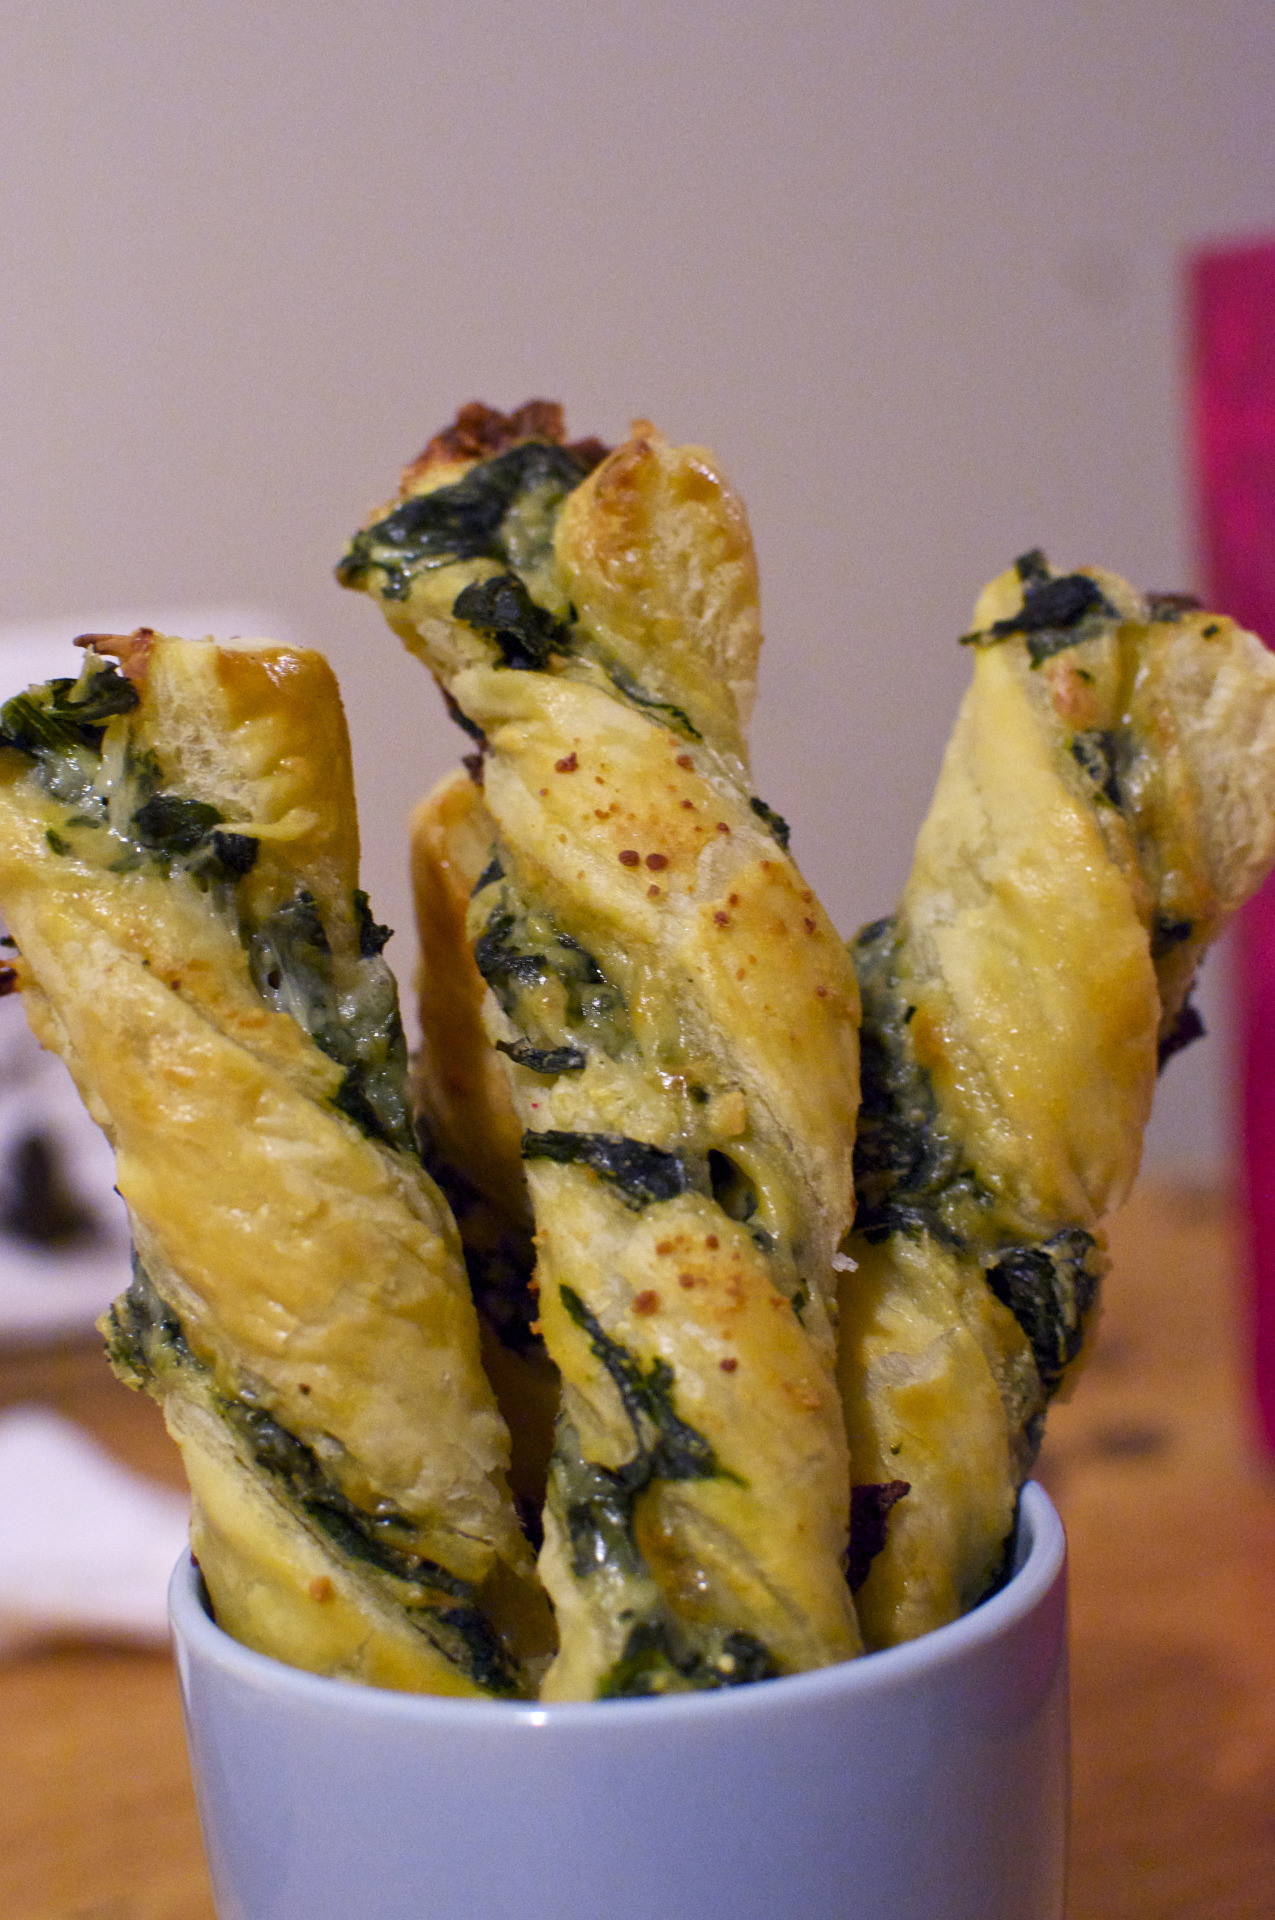 Spinach and Artichoke Cheese Twists Join me on my countdown to the Super Bowl! Come back everyday for a new recipe that you can enjoy while watching the biggest football game of the year!            Countdown to the Super Bowl                         [[MORE]]    5 more days! Spinach and Artichoke Cheese Twists  Spinach and artichoke dip is a classic appetizer for the Super Bowl, so why not combine it with cheese twists? Not only are these cheese twists tasty, but they can be made in advanced to help make the big day less stressful!   You and your party guests will love these cheese twists! They are buttery, cheesy, flaky, and filled with creamy spinach and artichoke filling. These will make for the perfect appetizer to any party!   Spinach and Artichoke Cheese Twists 1/3 cup frozen chopped spinach, thawed 1/2 cup chopped artichoke hearts 3 oz cream cheese, softened 1/4 cup grated parmesan cheese, divided Pinch garlic salt 1 egg 1 tbsp water 1 package puff pastry, thawed Flour, for dusting 3/4 cup grated mozzarella cheese — Preheat the oven to 400 degrees F. Line a large baking sheet with parchment or wax paper. In a medium bowl, combine the spinach, artichoke hearts, cream cheese, 3 tbsp parmesan cheese, and garlic salt.  In a small bowl, whisk together the egg and water to create an egg wash. On a floured surface, unfold one sheet of puff pastry. Brush a little egg wash on top. Sprinkle half of the mozzarella cheese evenly on the puff pastry, then evenly spread the spinach and artichoke mixture on top. Sprinkle the remaining mozzarella cheese on top of the spinach and artichoke mixture.  Unfold the other puff pastry sheet and brush with egg wash. Flip this sheet of puff pastry over onto the mozzarella cheese so that the egg washed side is touching the cheese. Press down on the sheet with your fingers to compress the layers together.  Cut the sheet in half lengthwise, then cut into strips of about 3/4 inch in width. Grab both ends of each strip, twist in opposite directions to form a spiral, and place on the prepared baking sheet.  Brush each cheese twist with egg wash and sprinkle the remaining 1 tbsp parmesan cheese on top. Bake at 400 degrees F for about 20 minutes, or until golden brown. Makes about 20 cheese twists. ***Note: To prepare ahead of time, make the twists, arrange on the baking sheet in advanced, and store in the refrigerator, making sure to keep the baking sheet tightly wrapped with plastic wrap. On the day of the party, unwrap, brush with egg wash, sprinkle with parmesan cheese and bake at 400 degrees for 20 to 25 minutes, or until golden brown.